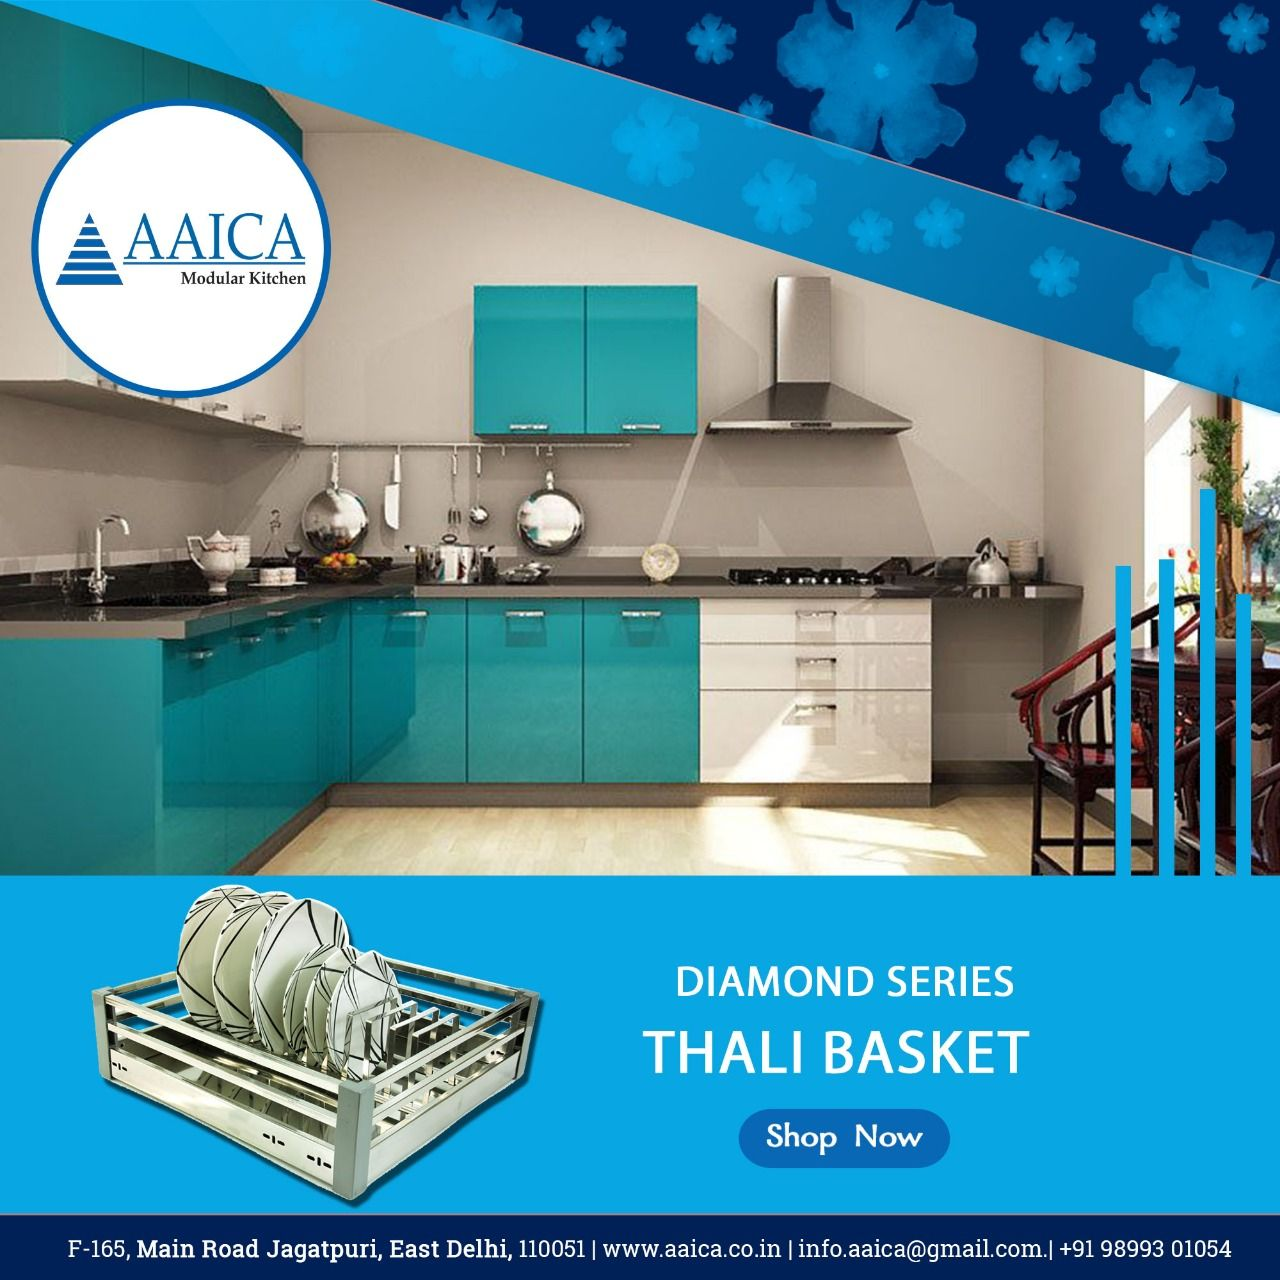 Diamond series Thali Basket is trending at #Aaica to add to your ...